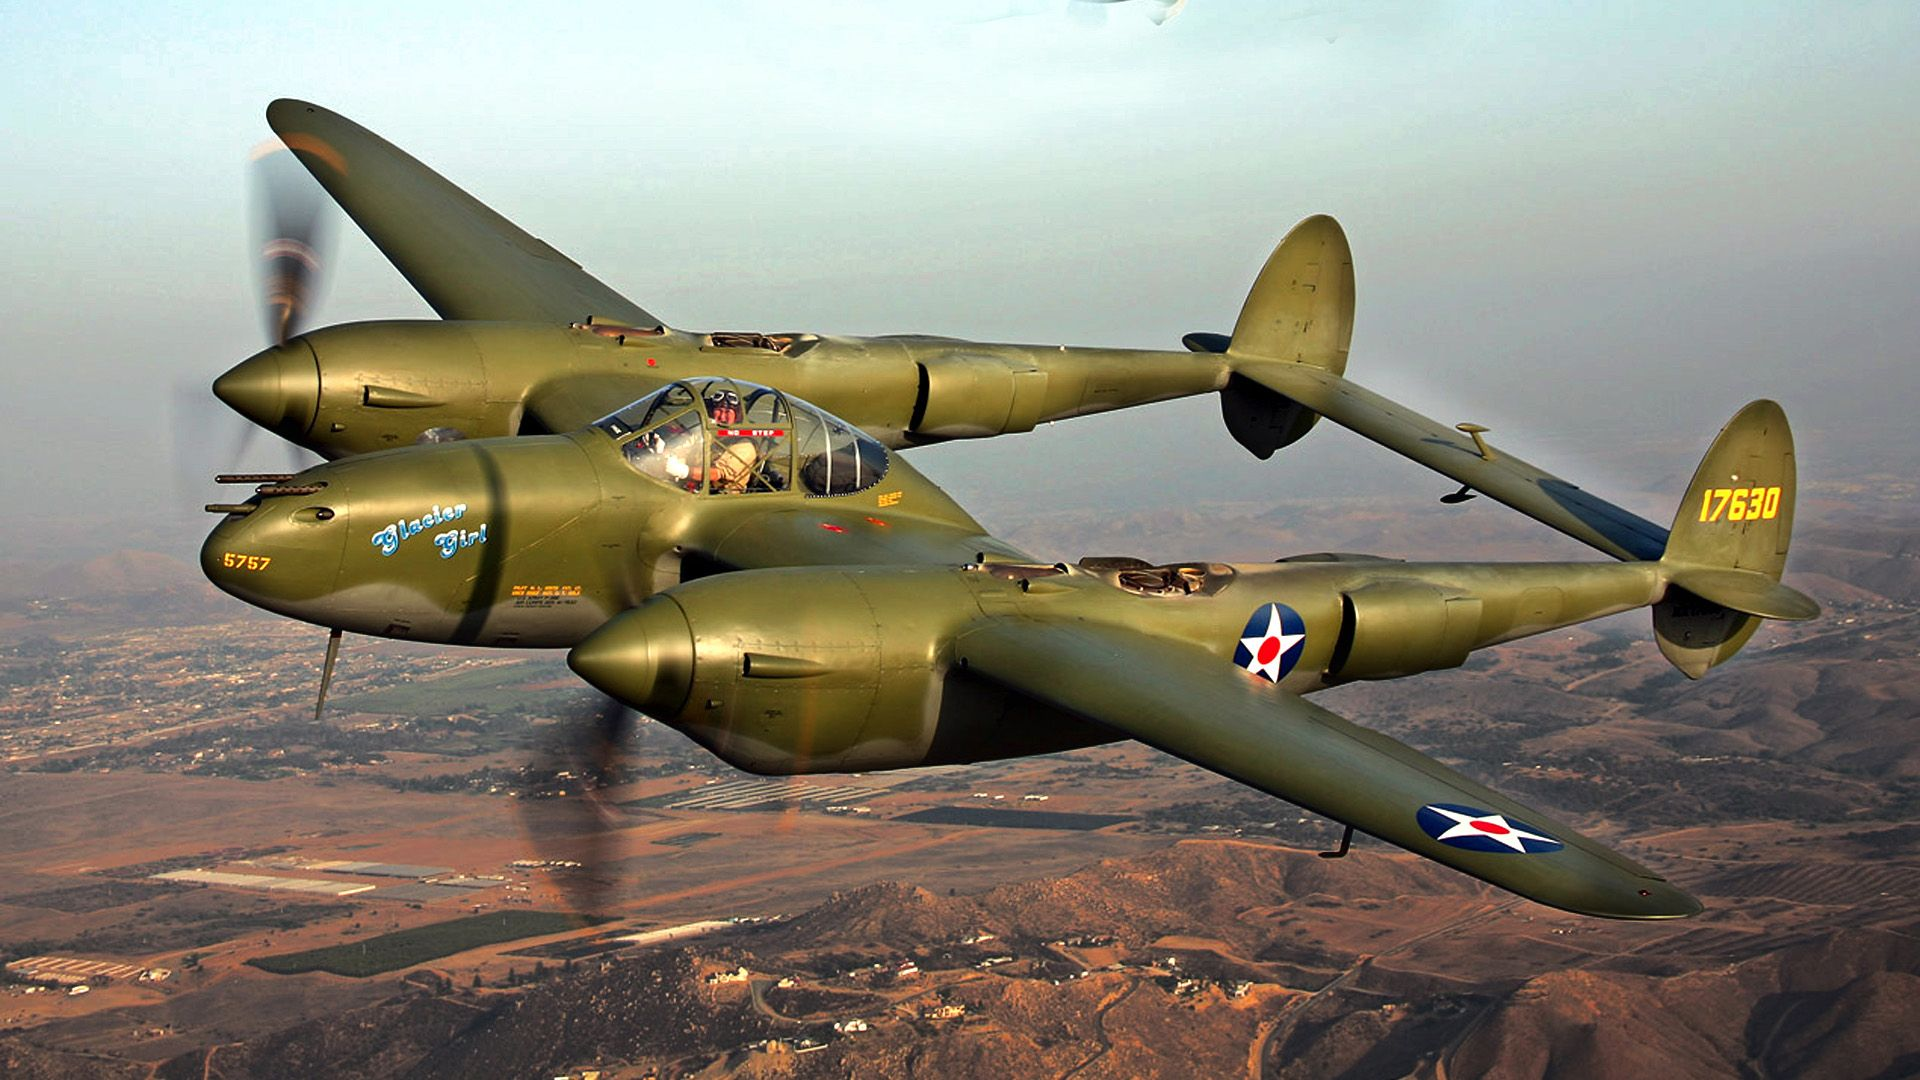 world war two bombers essay World war ii: the north african campaign alan taylor the north african campaign began in june of 1940 and continued for three years b-17 bombers, of the u.